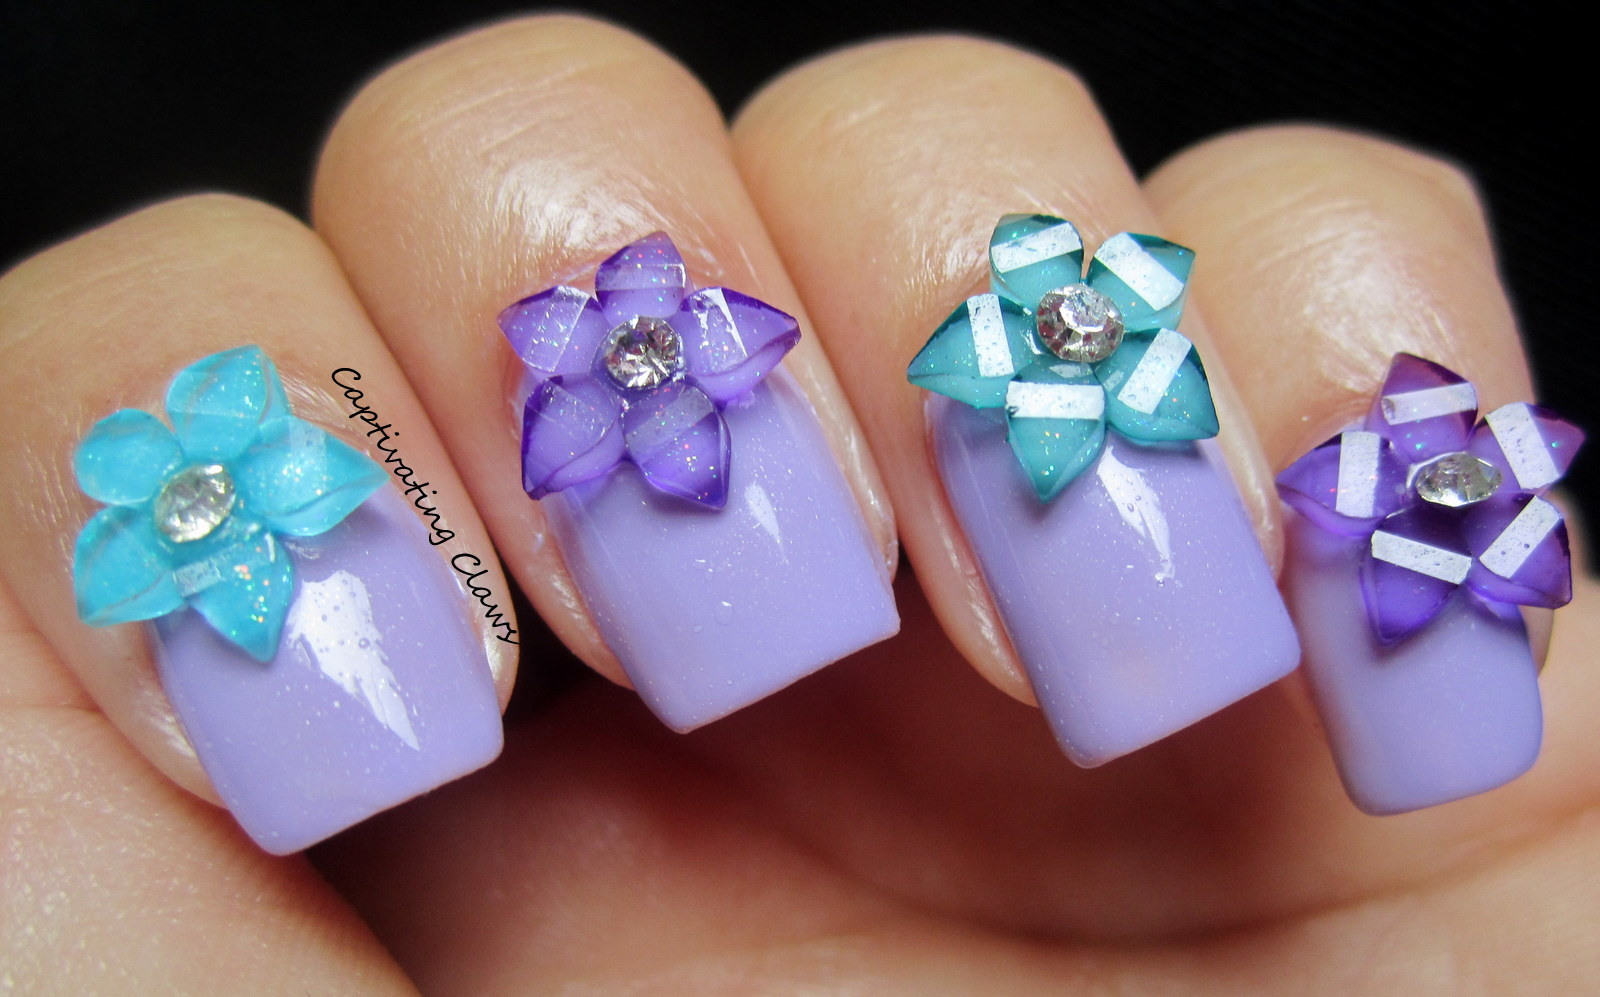 Captivating Claws: 3D Nail Art with Flowers and Bows from ...